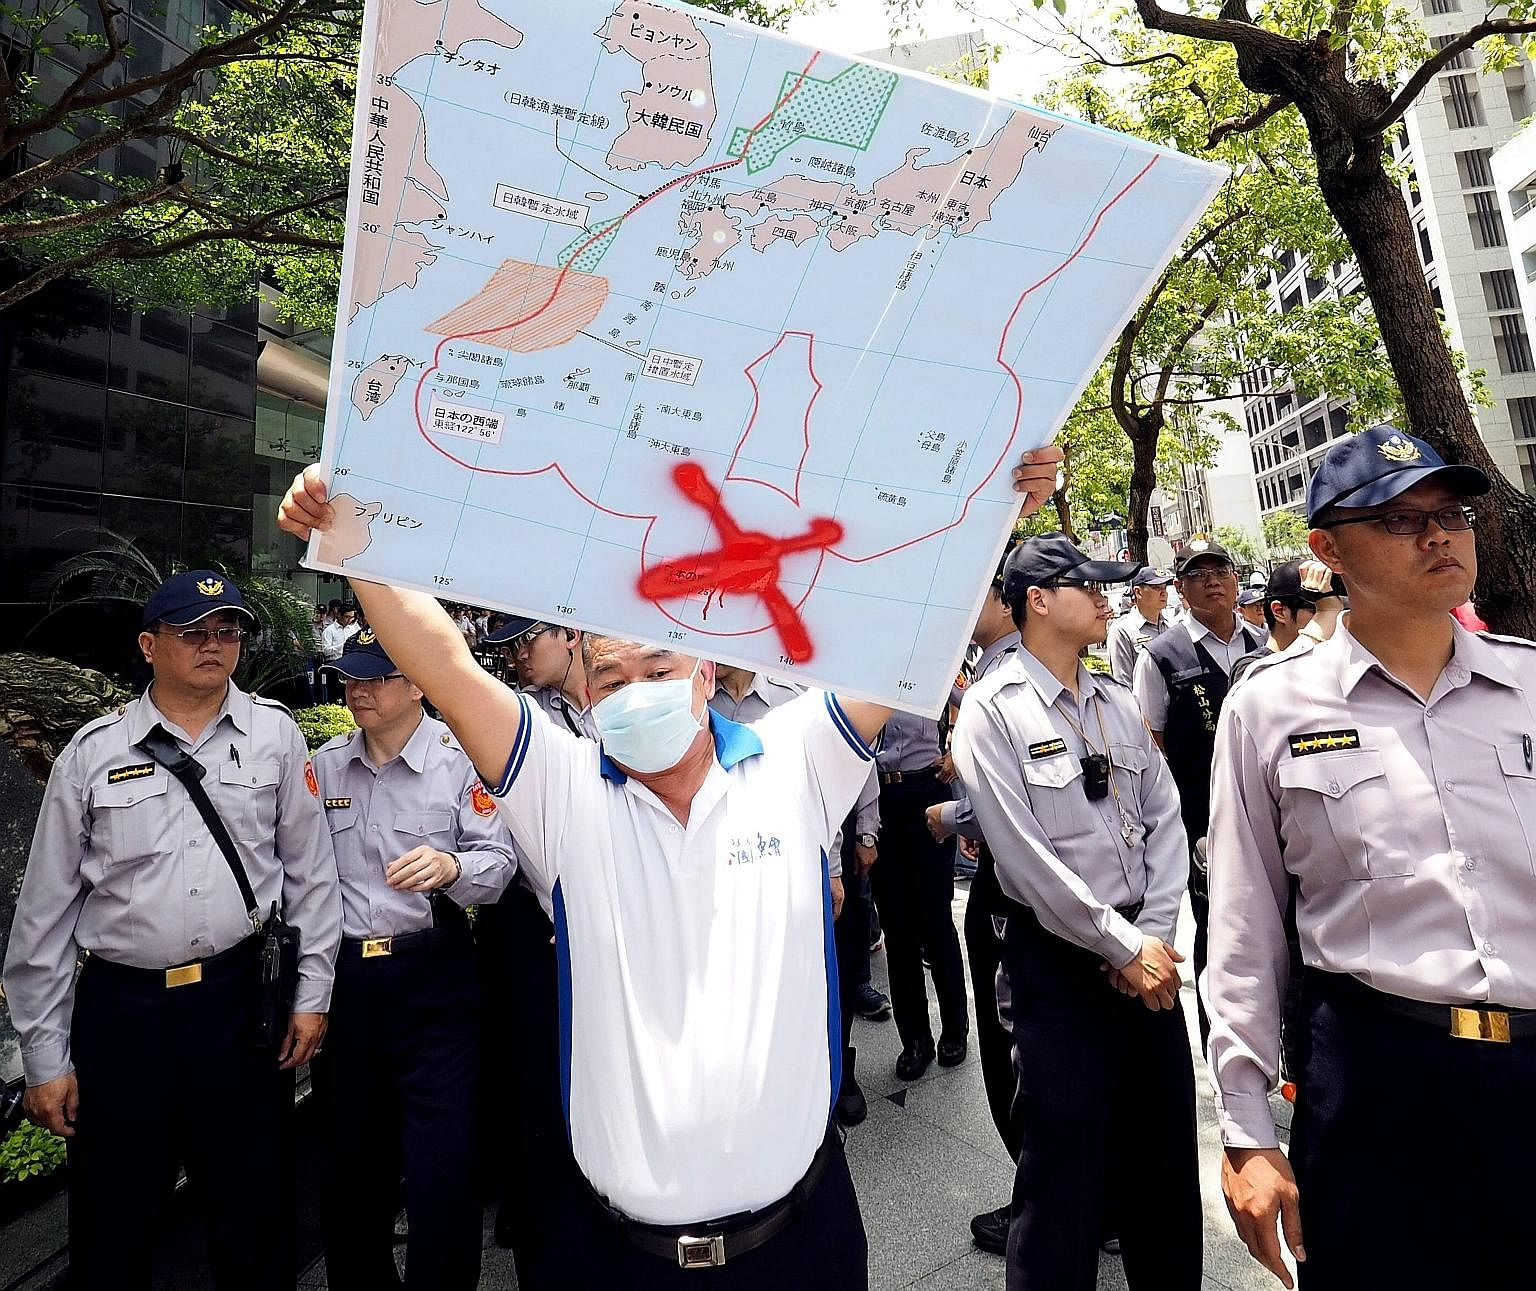 A Taiwanese fisherman with a map showing the location of Okinotorishima Island crossed out, during a protest last month over Japan's seizure of a Taiwanese trawler there.